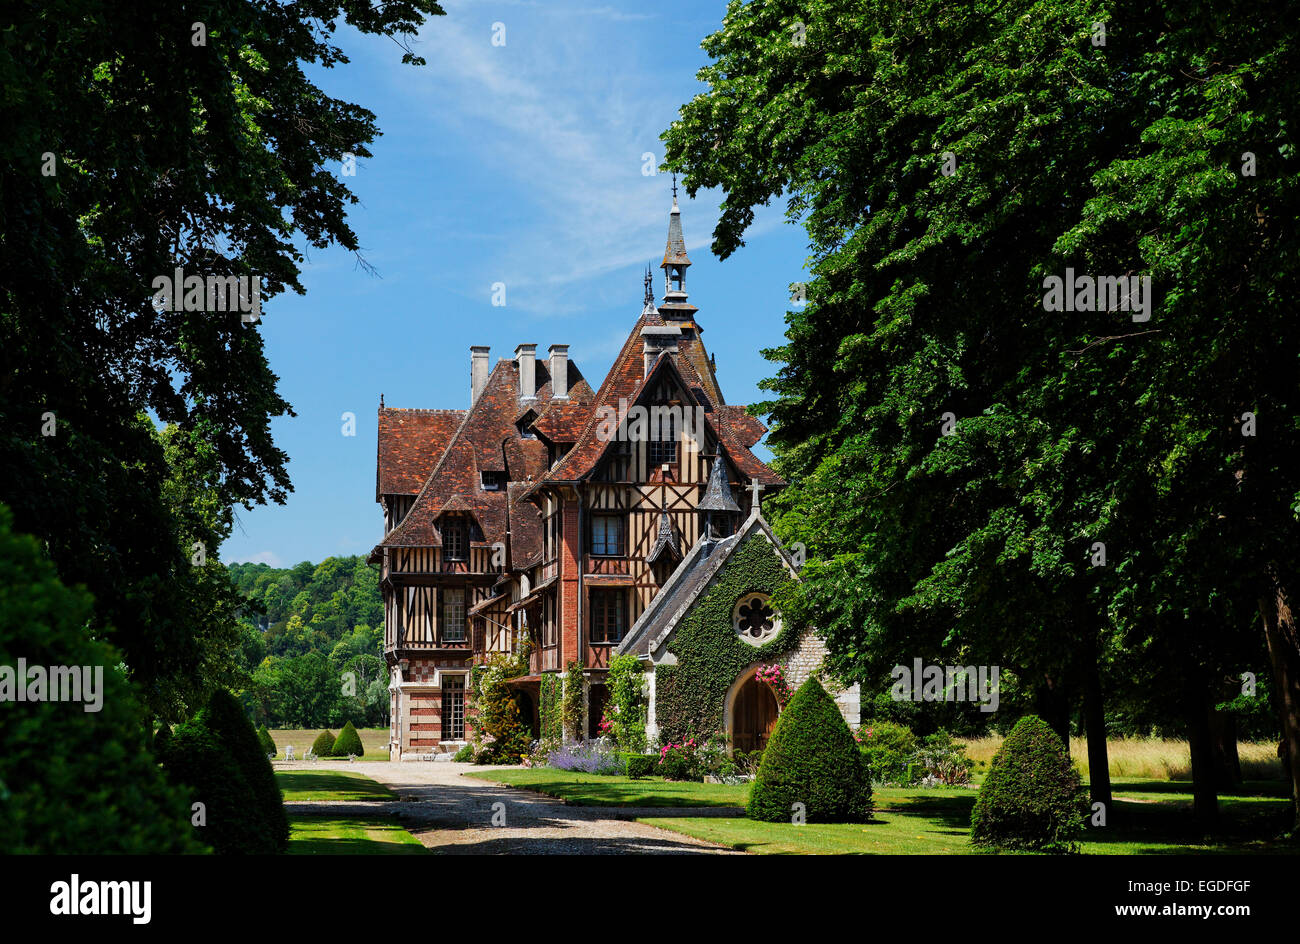 Manor house, Manoir de Villers, Saint Pierre de Manneville, Seine-Maritime, Upper-Normandy, France - Stock Image